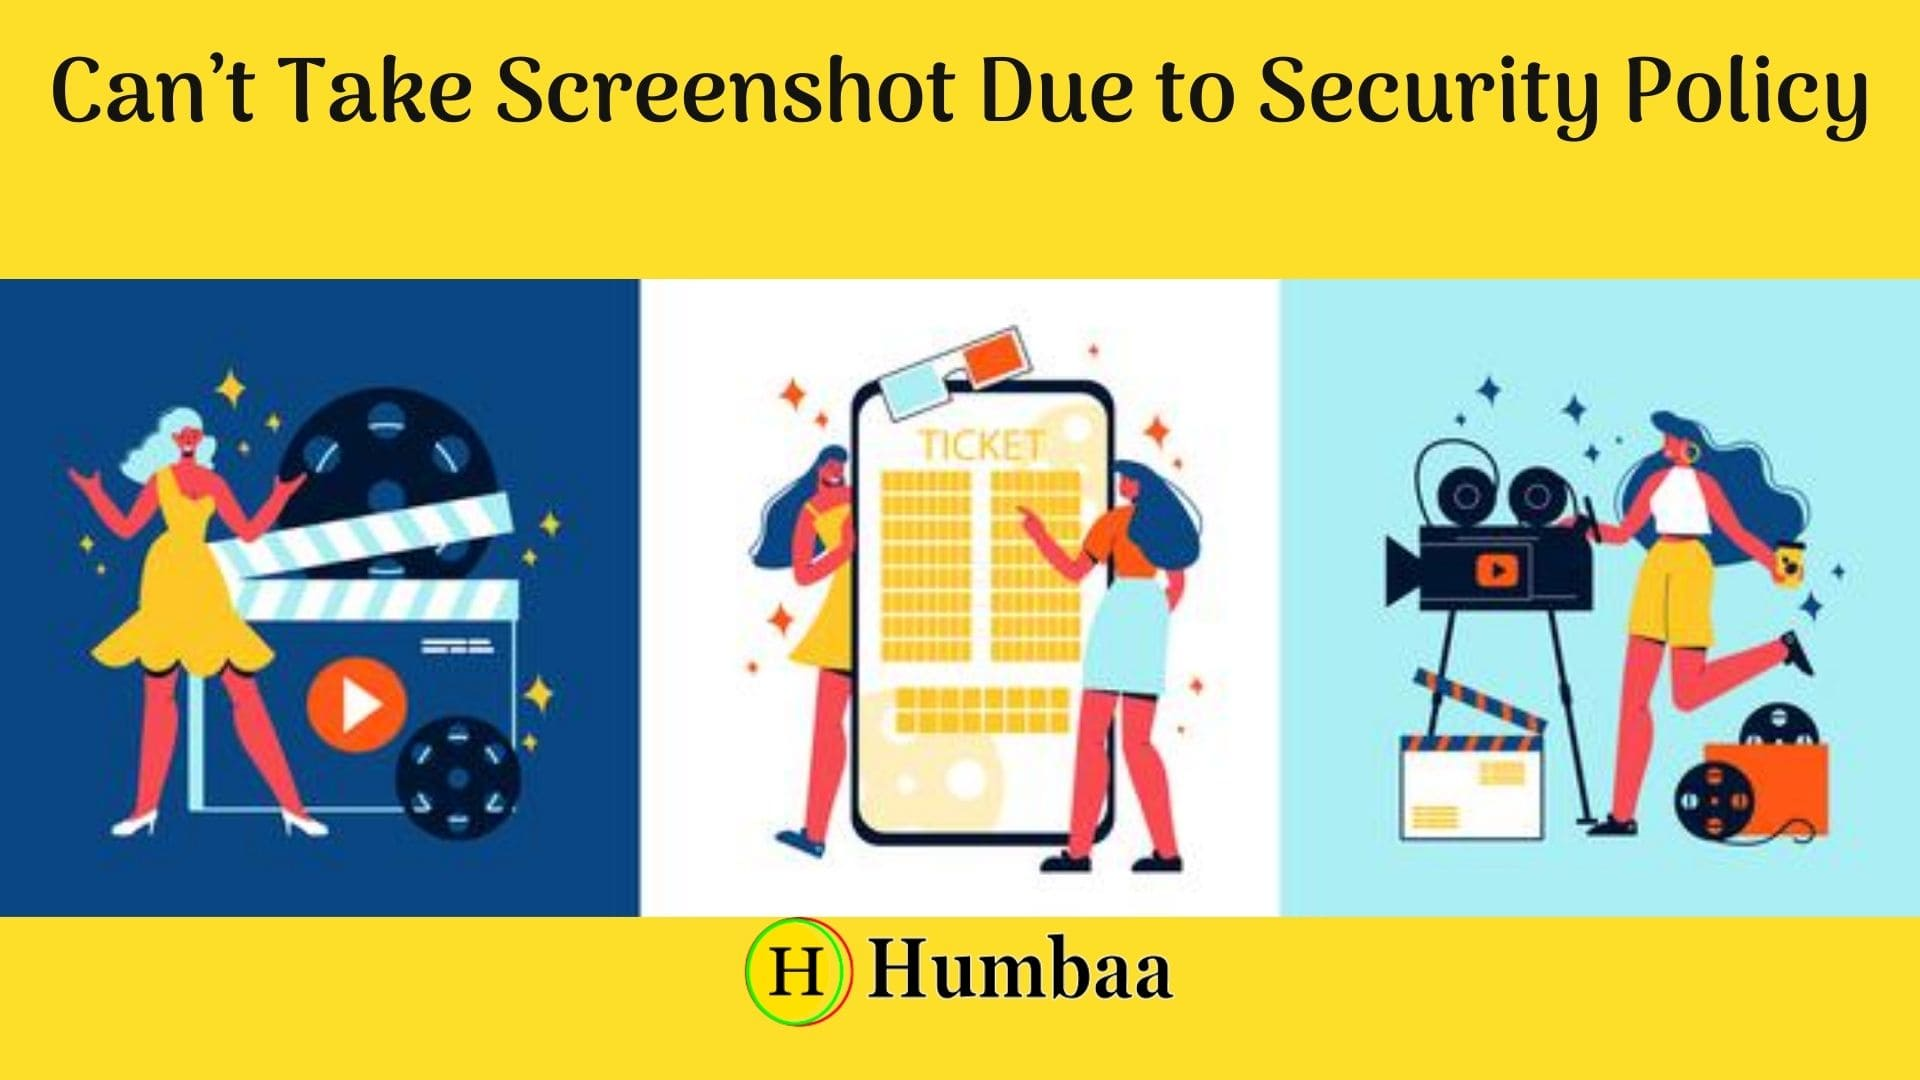 Can't Take Screenshot Due to Security Policy